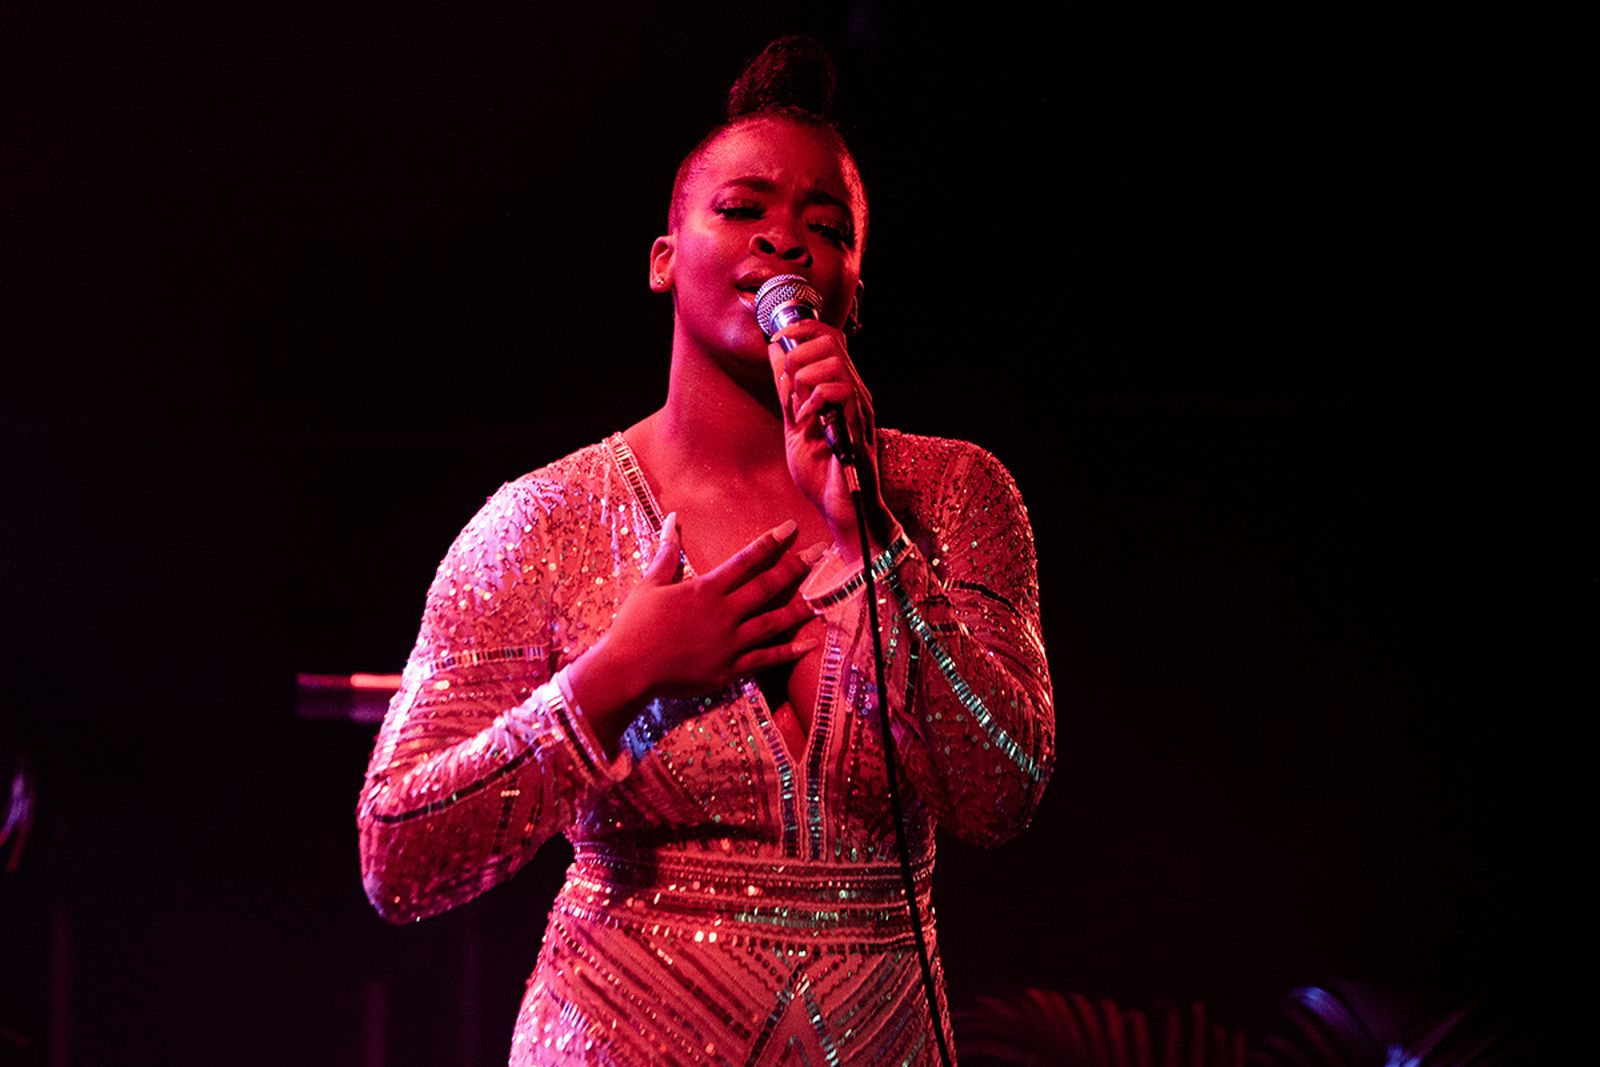 Ari Lennox performs at Electric Ballroom